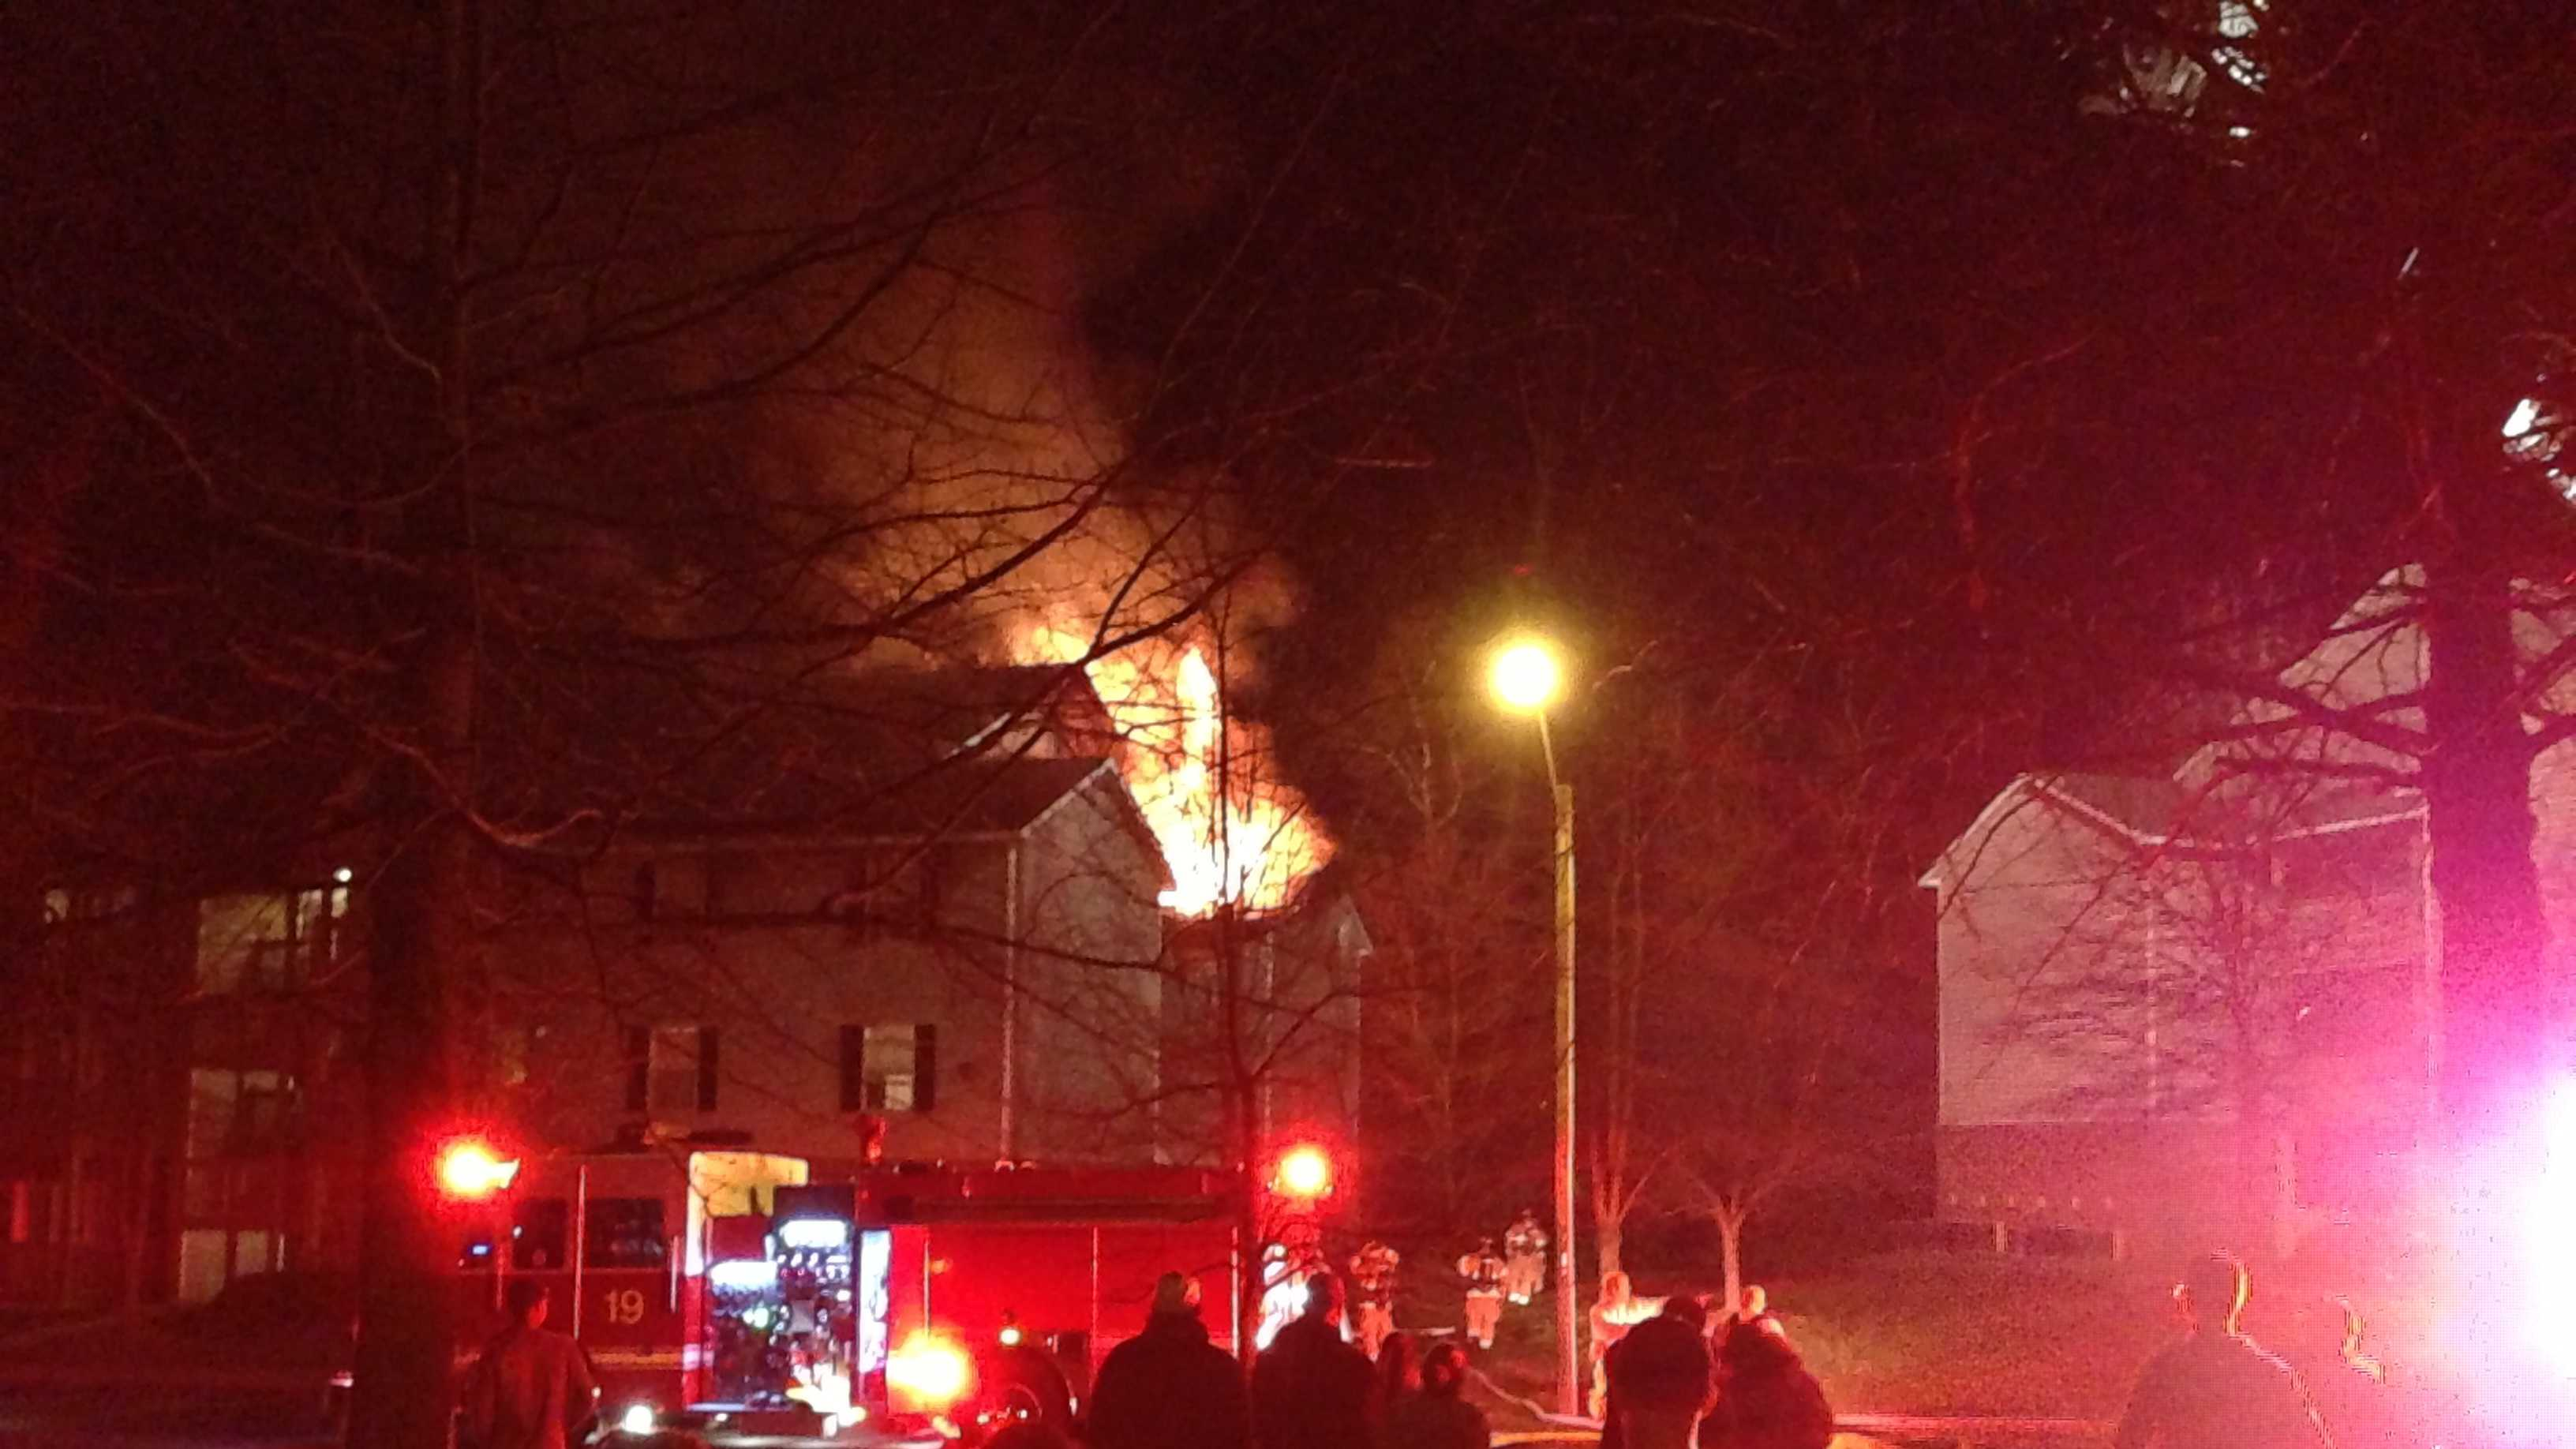 18 families displaced in Greensboro apartment complex fire